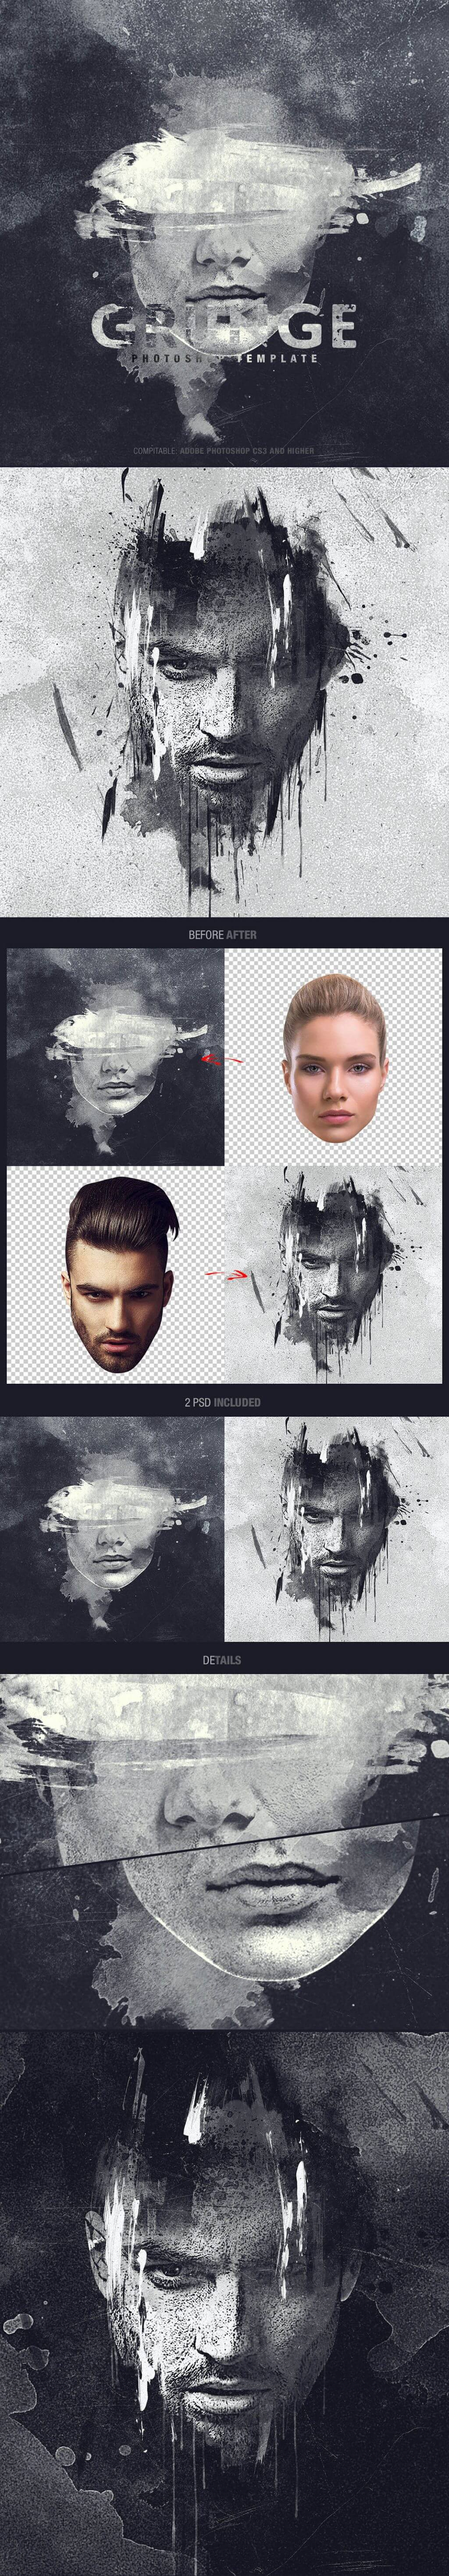 Grunge Artistic Photo Effects Photoshop Template